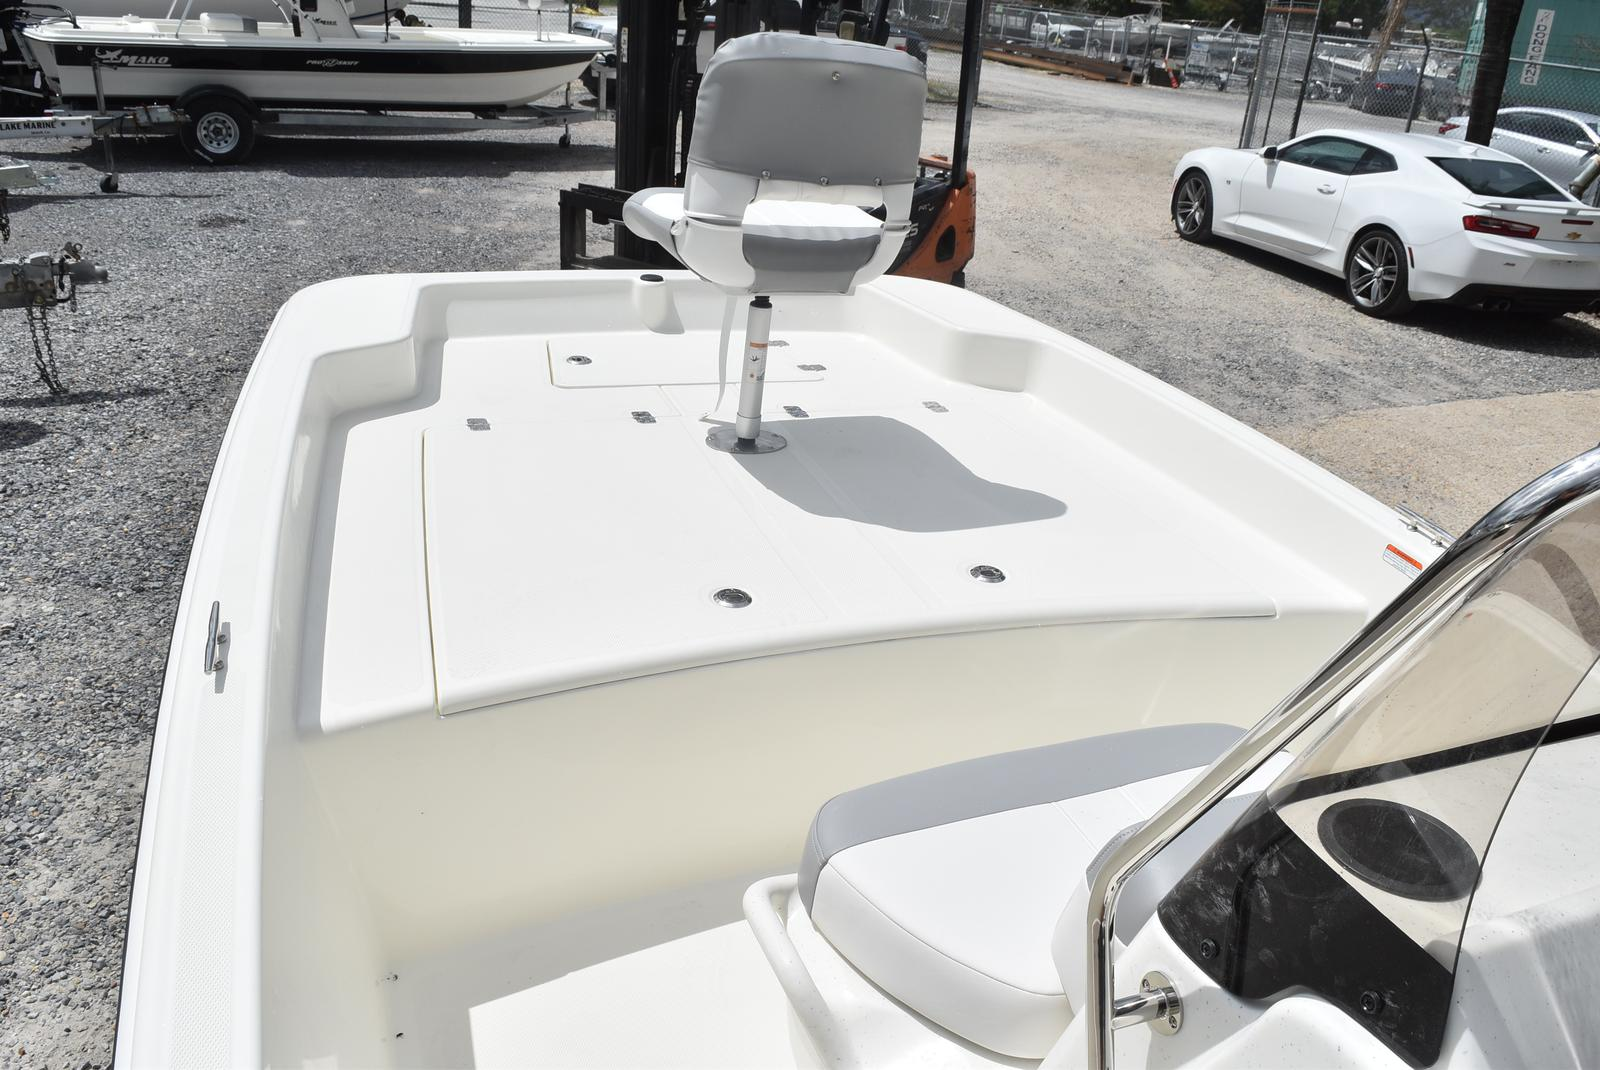 2020 Mako boat for sale, model of the boat is Pro Skiff 17, 75 ELPT & Image # 404 of 702